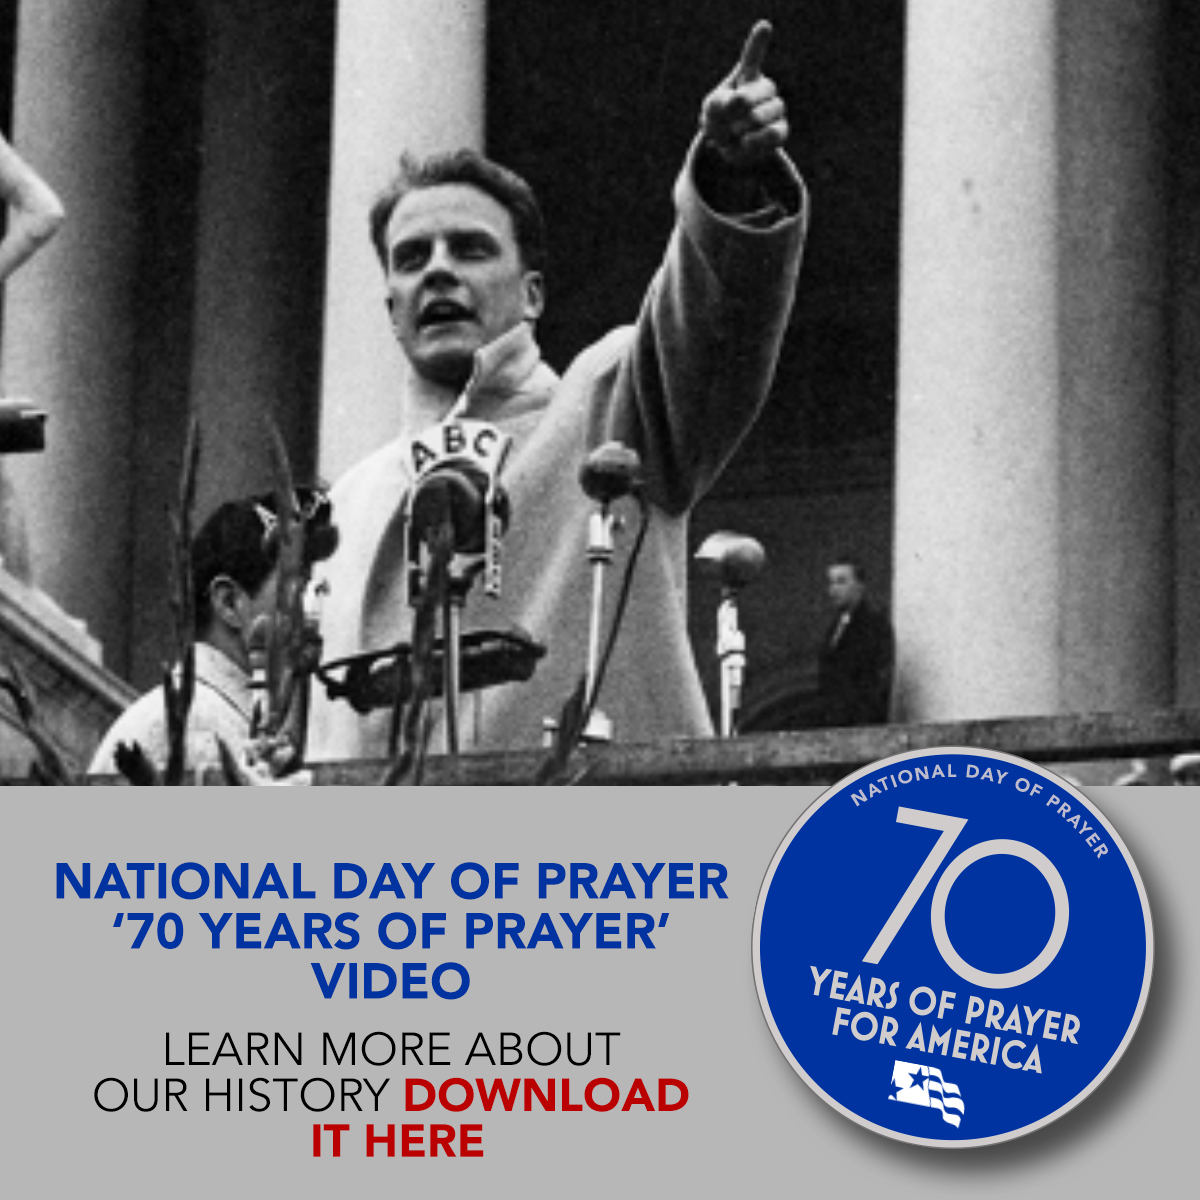 LEARN ABOUT THE HISTORY OF THE NATIONAL DAY OF PRAYER!